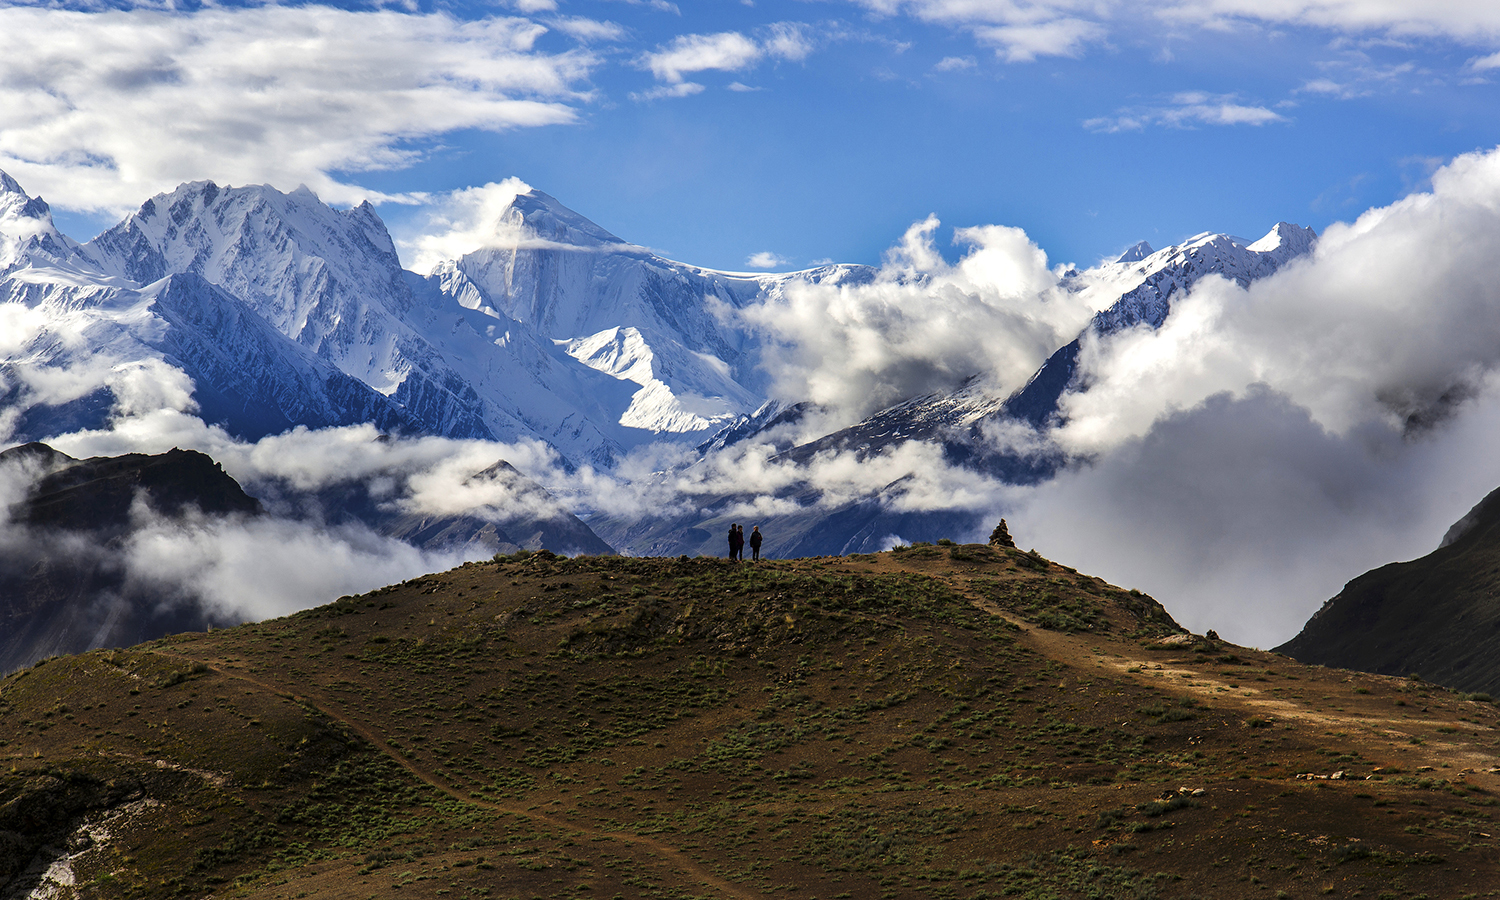 Duiker Peak, Hunza. — Photo by Mudassir Ahmed